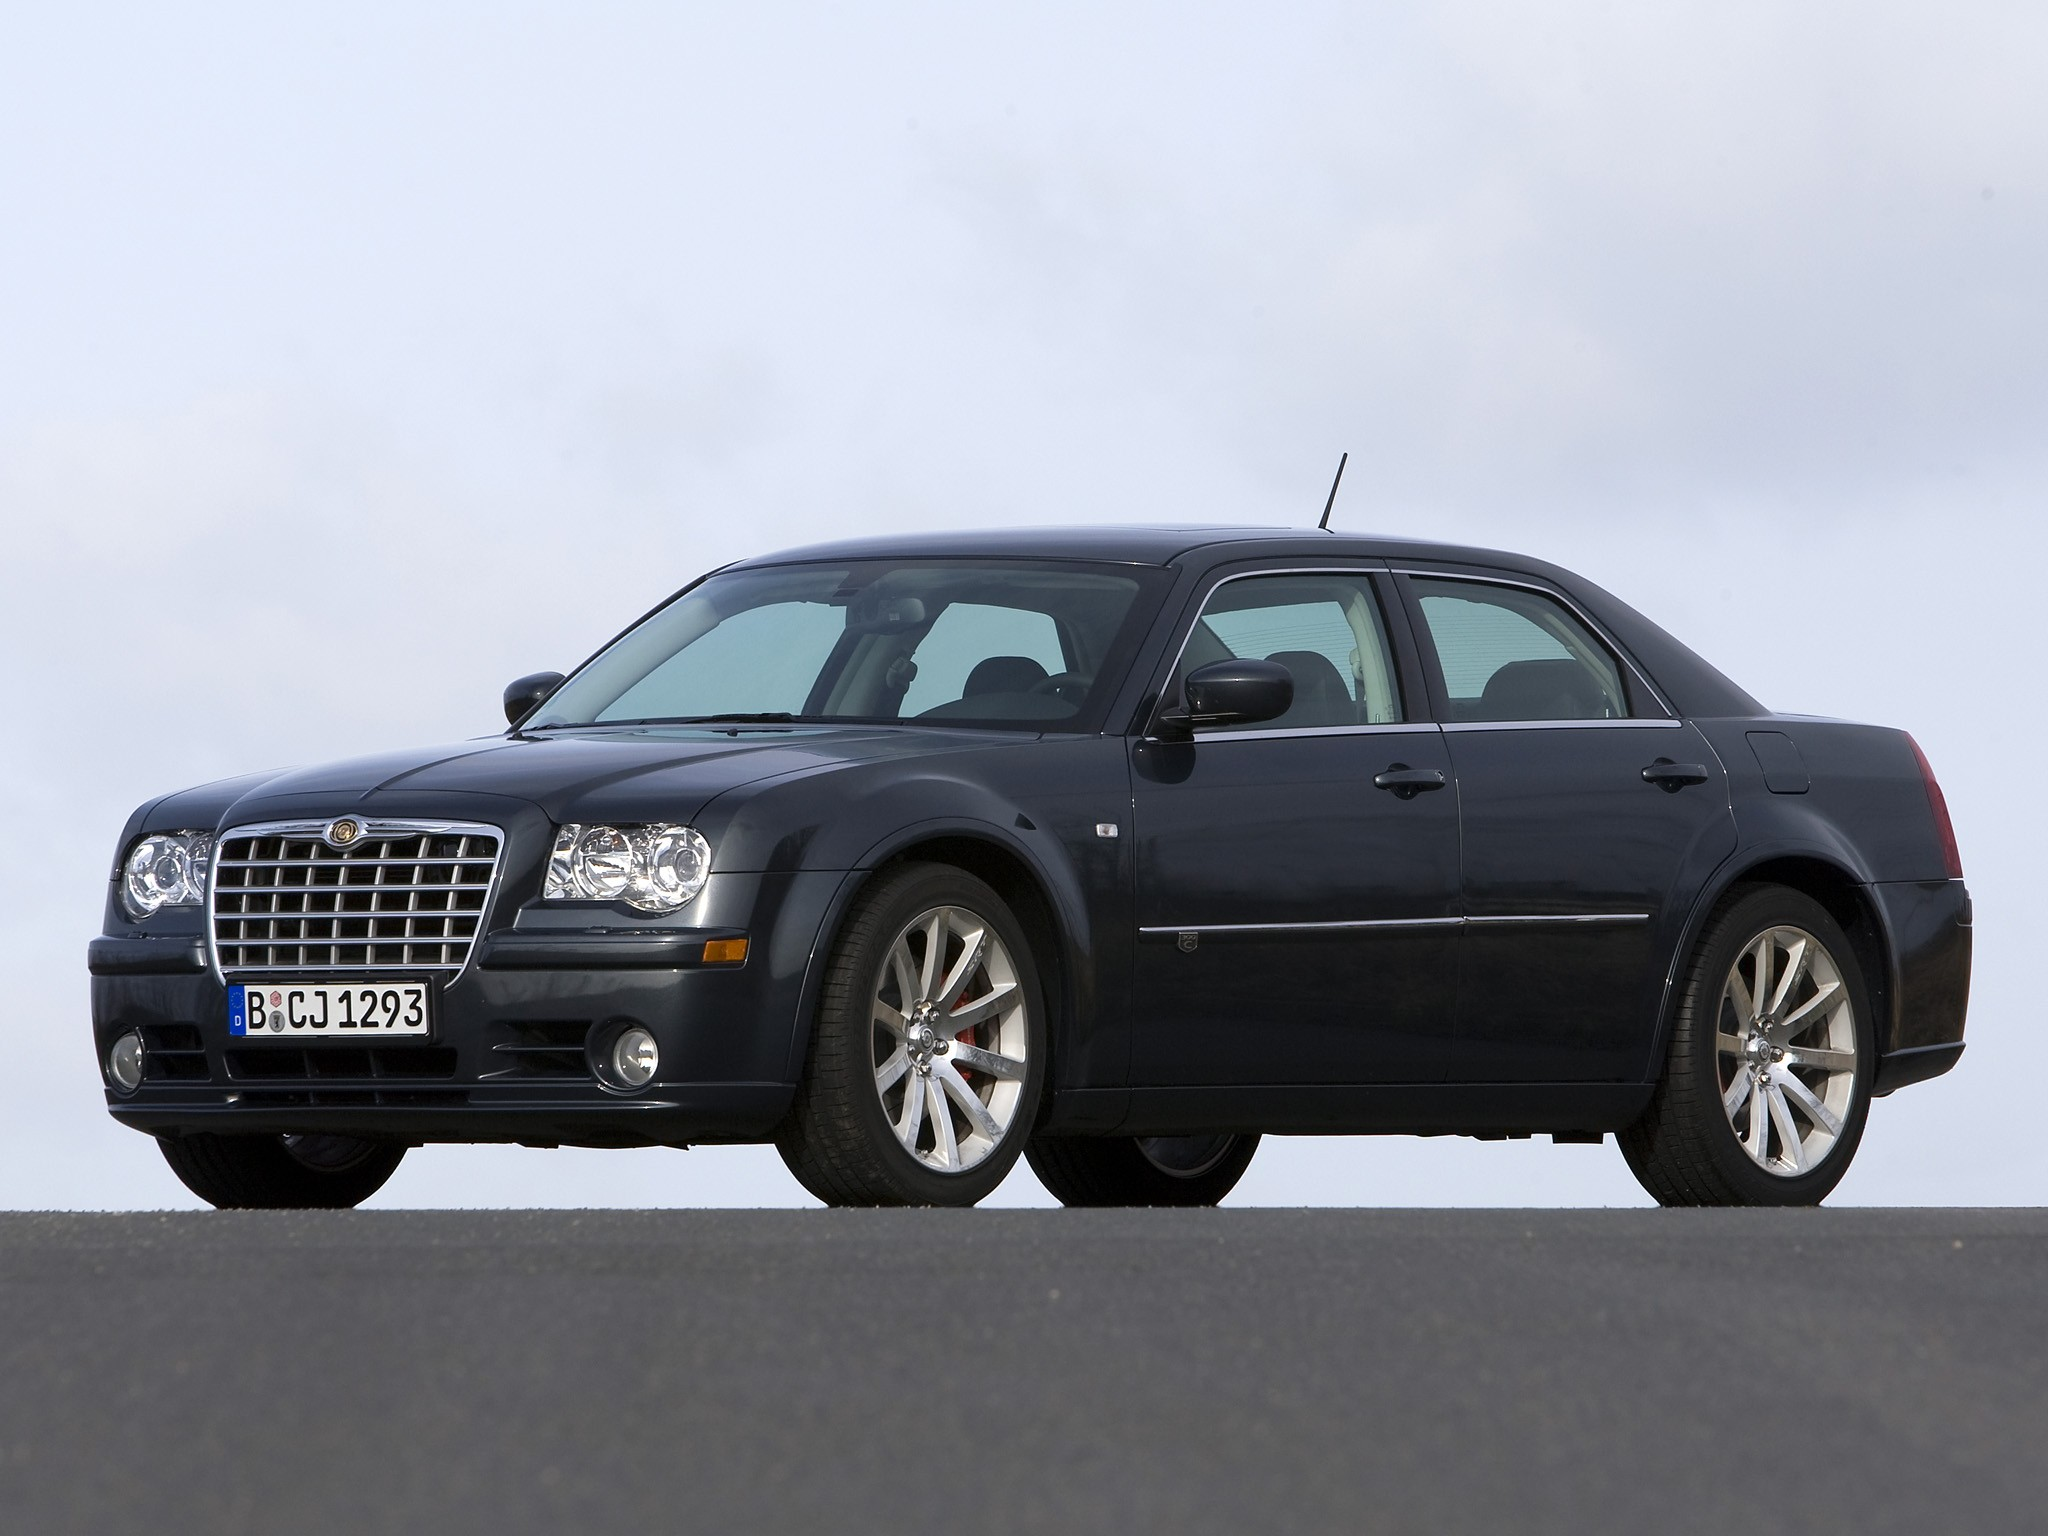 Chrysler 300C SRT8 I 2004 - 2010 Sedan #8